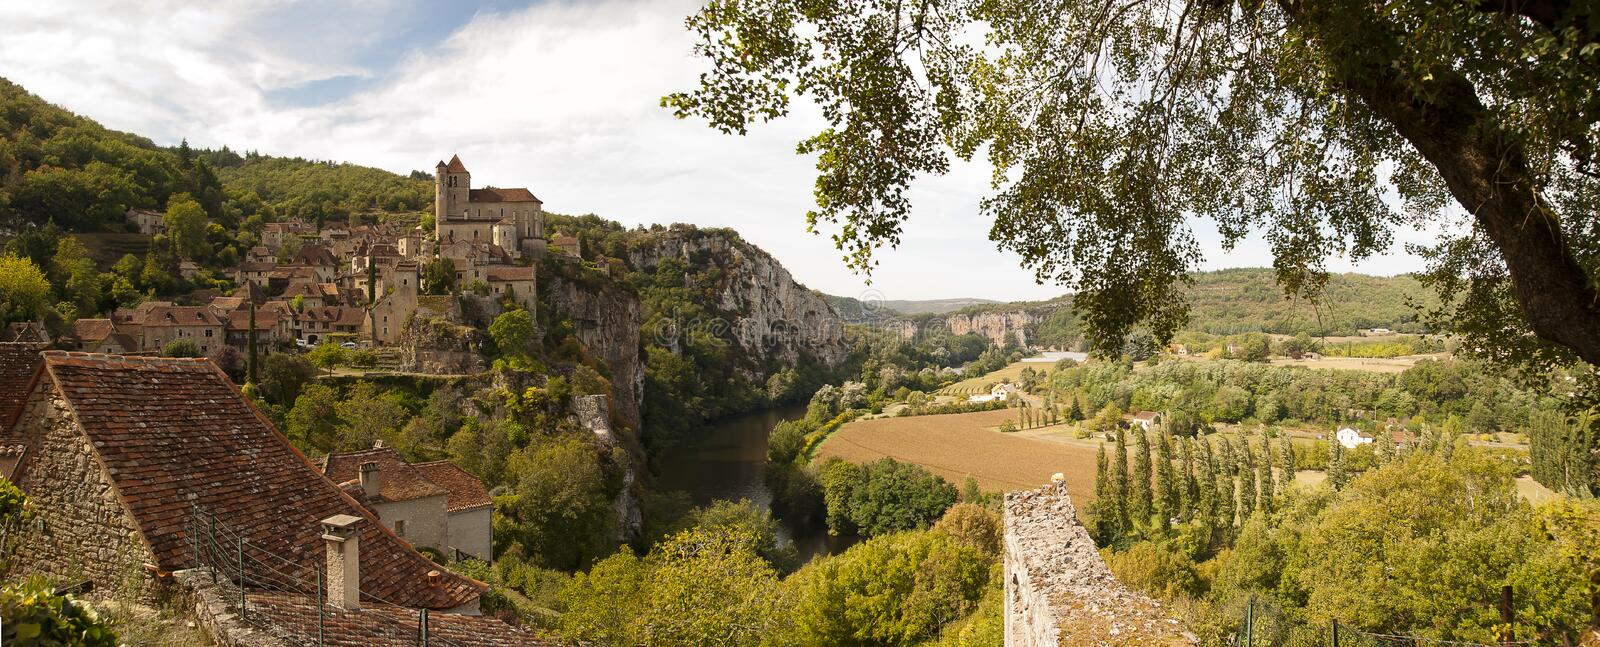 Saint-Cirq-Lapopie in Panoramic view France royalty free stock image